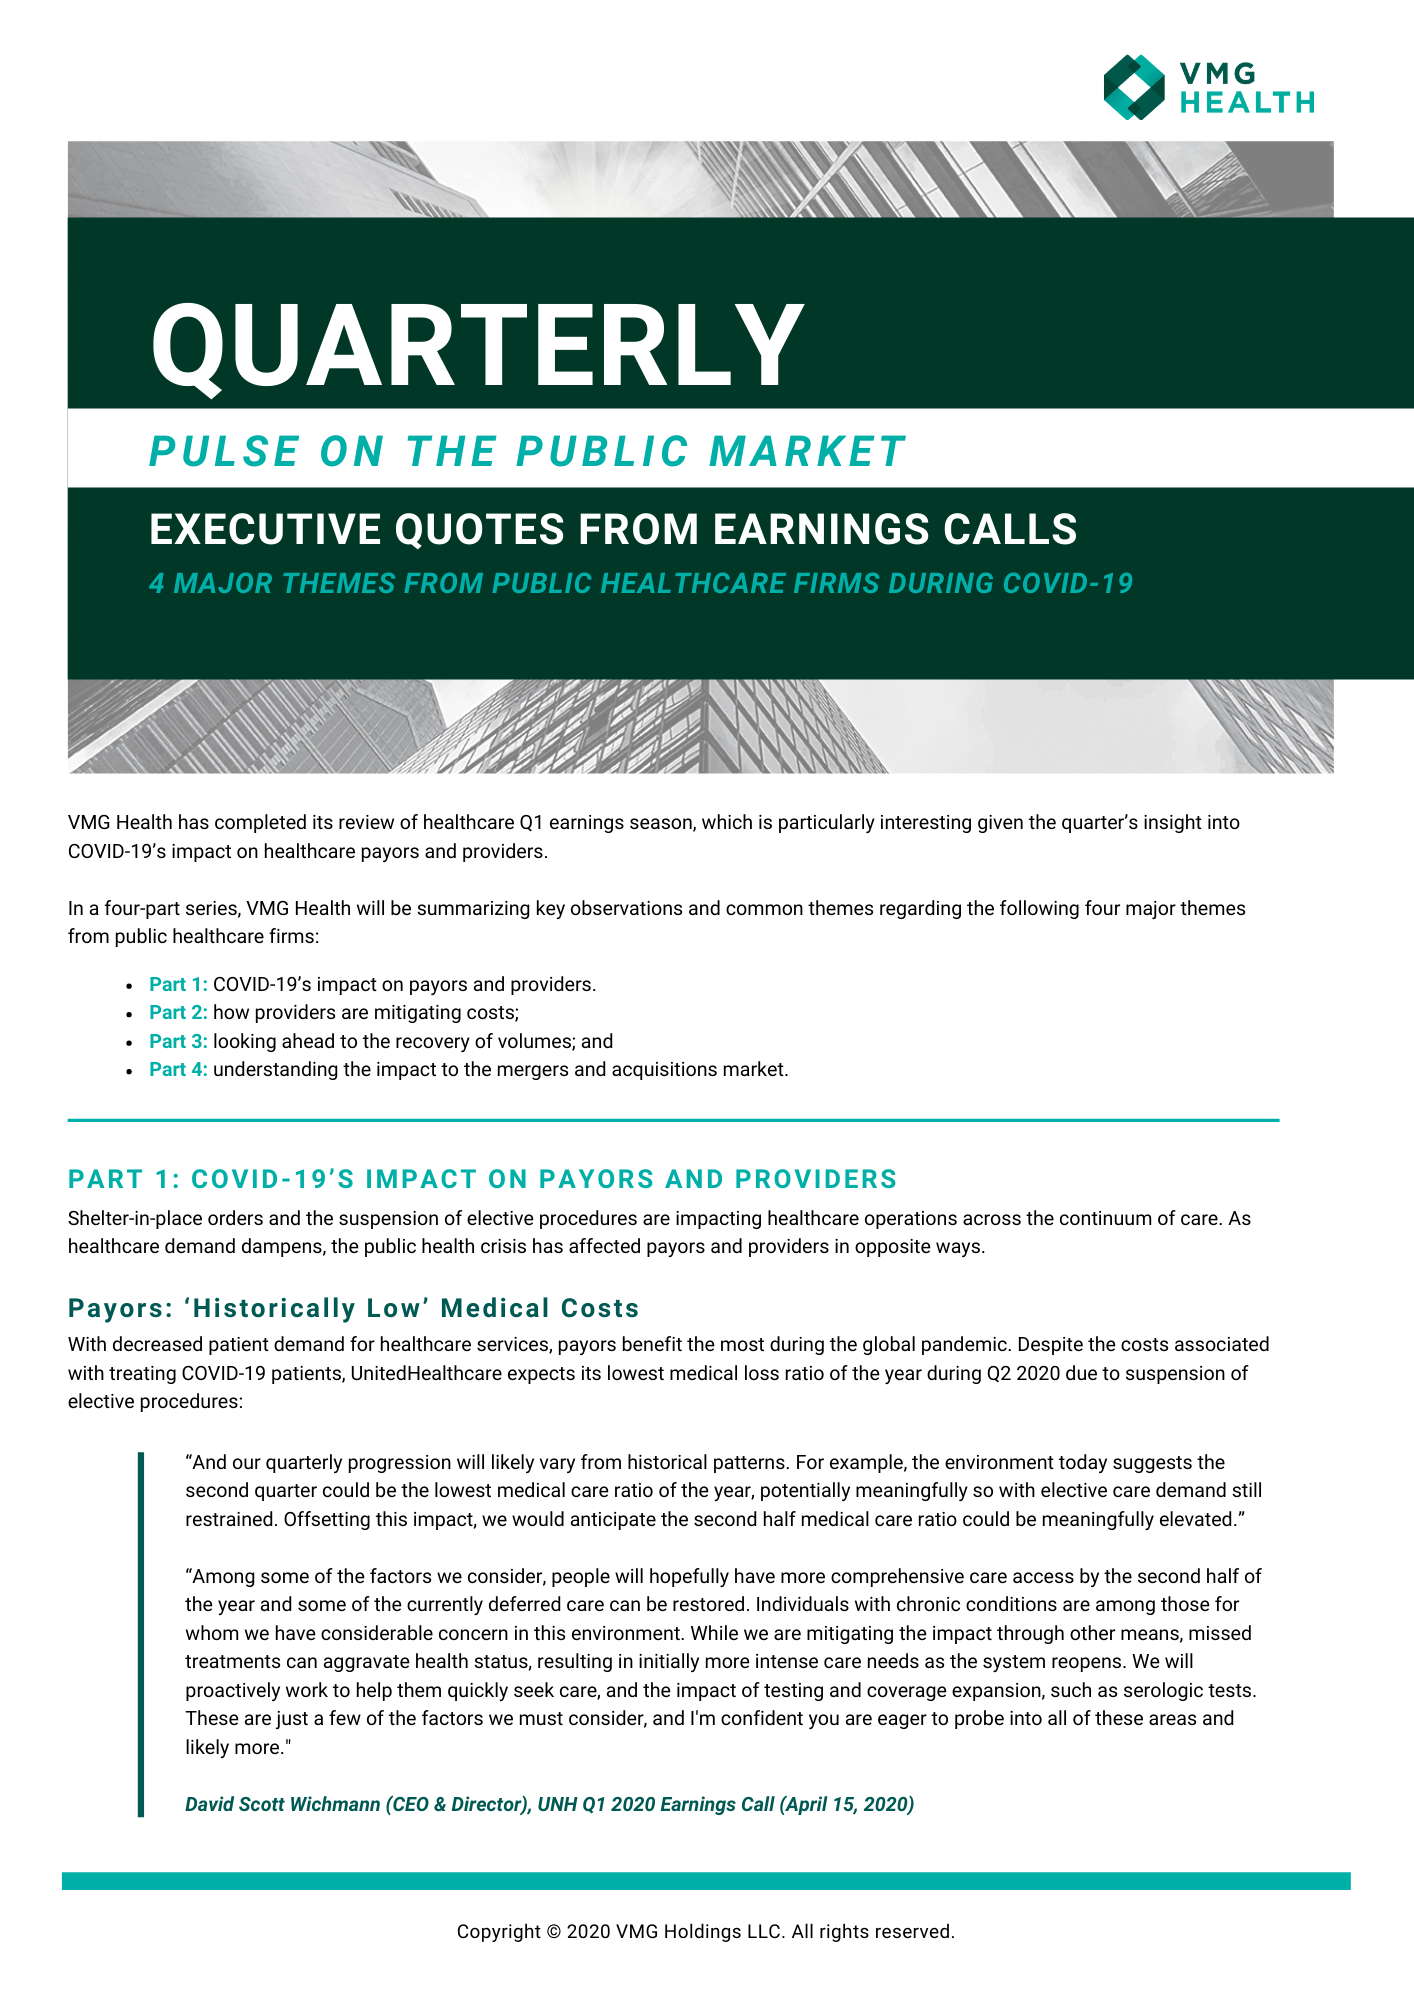 Executive Quotes from Earnings Calls: 4 Major Themes from Public Healthcare Firms During COVID-19